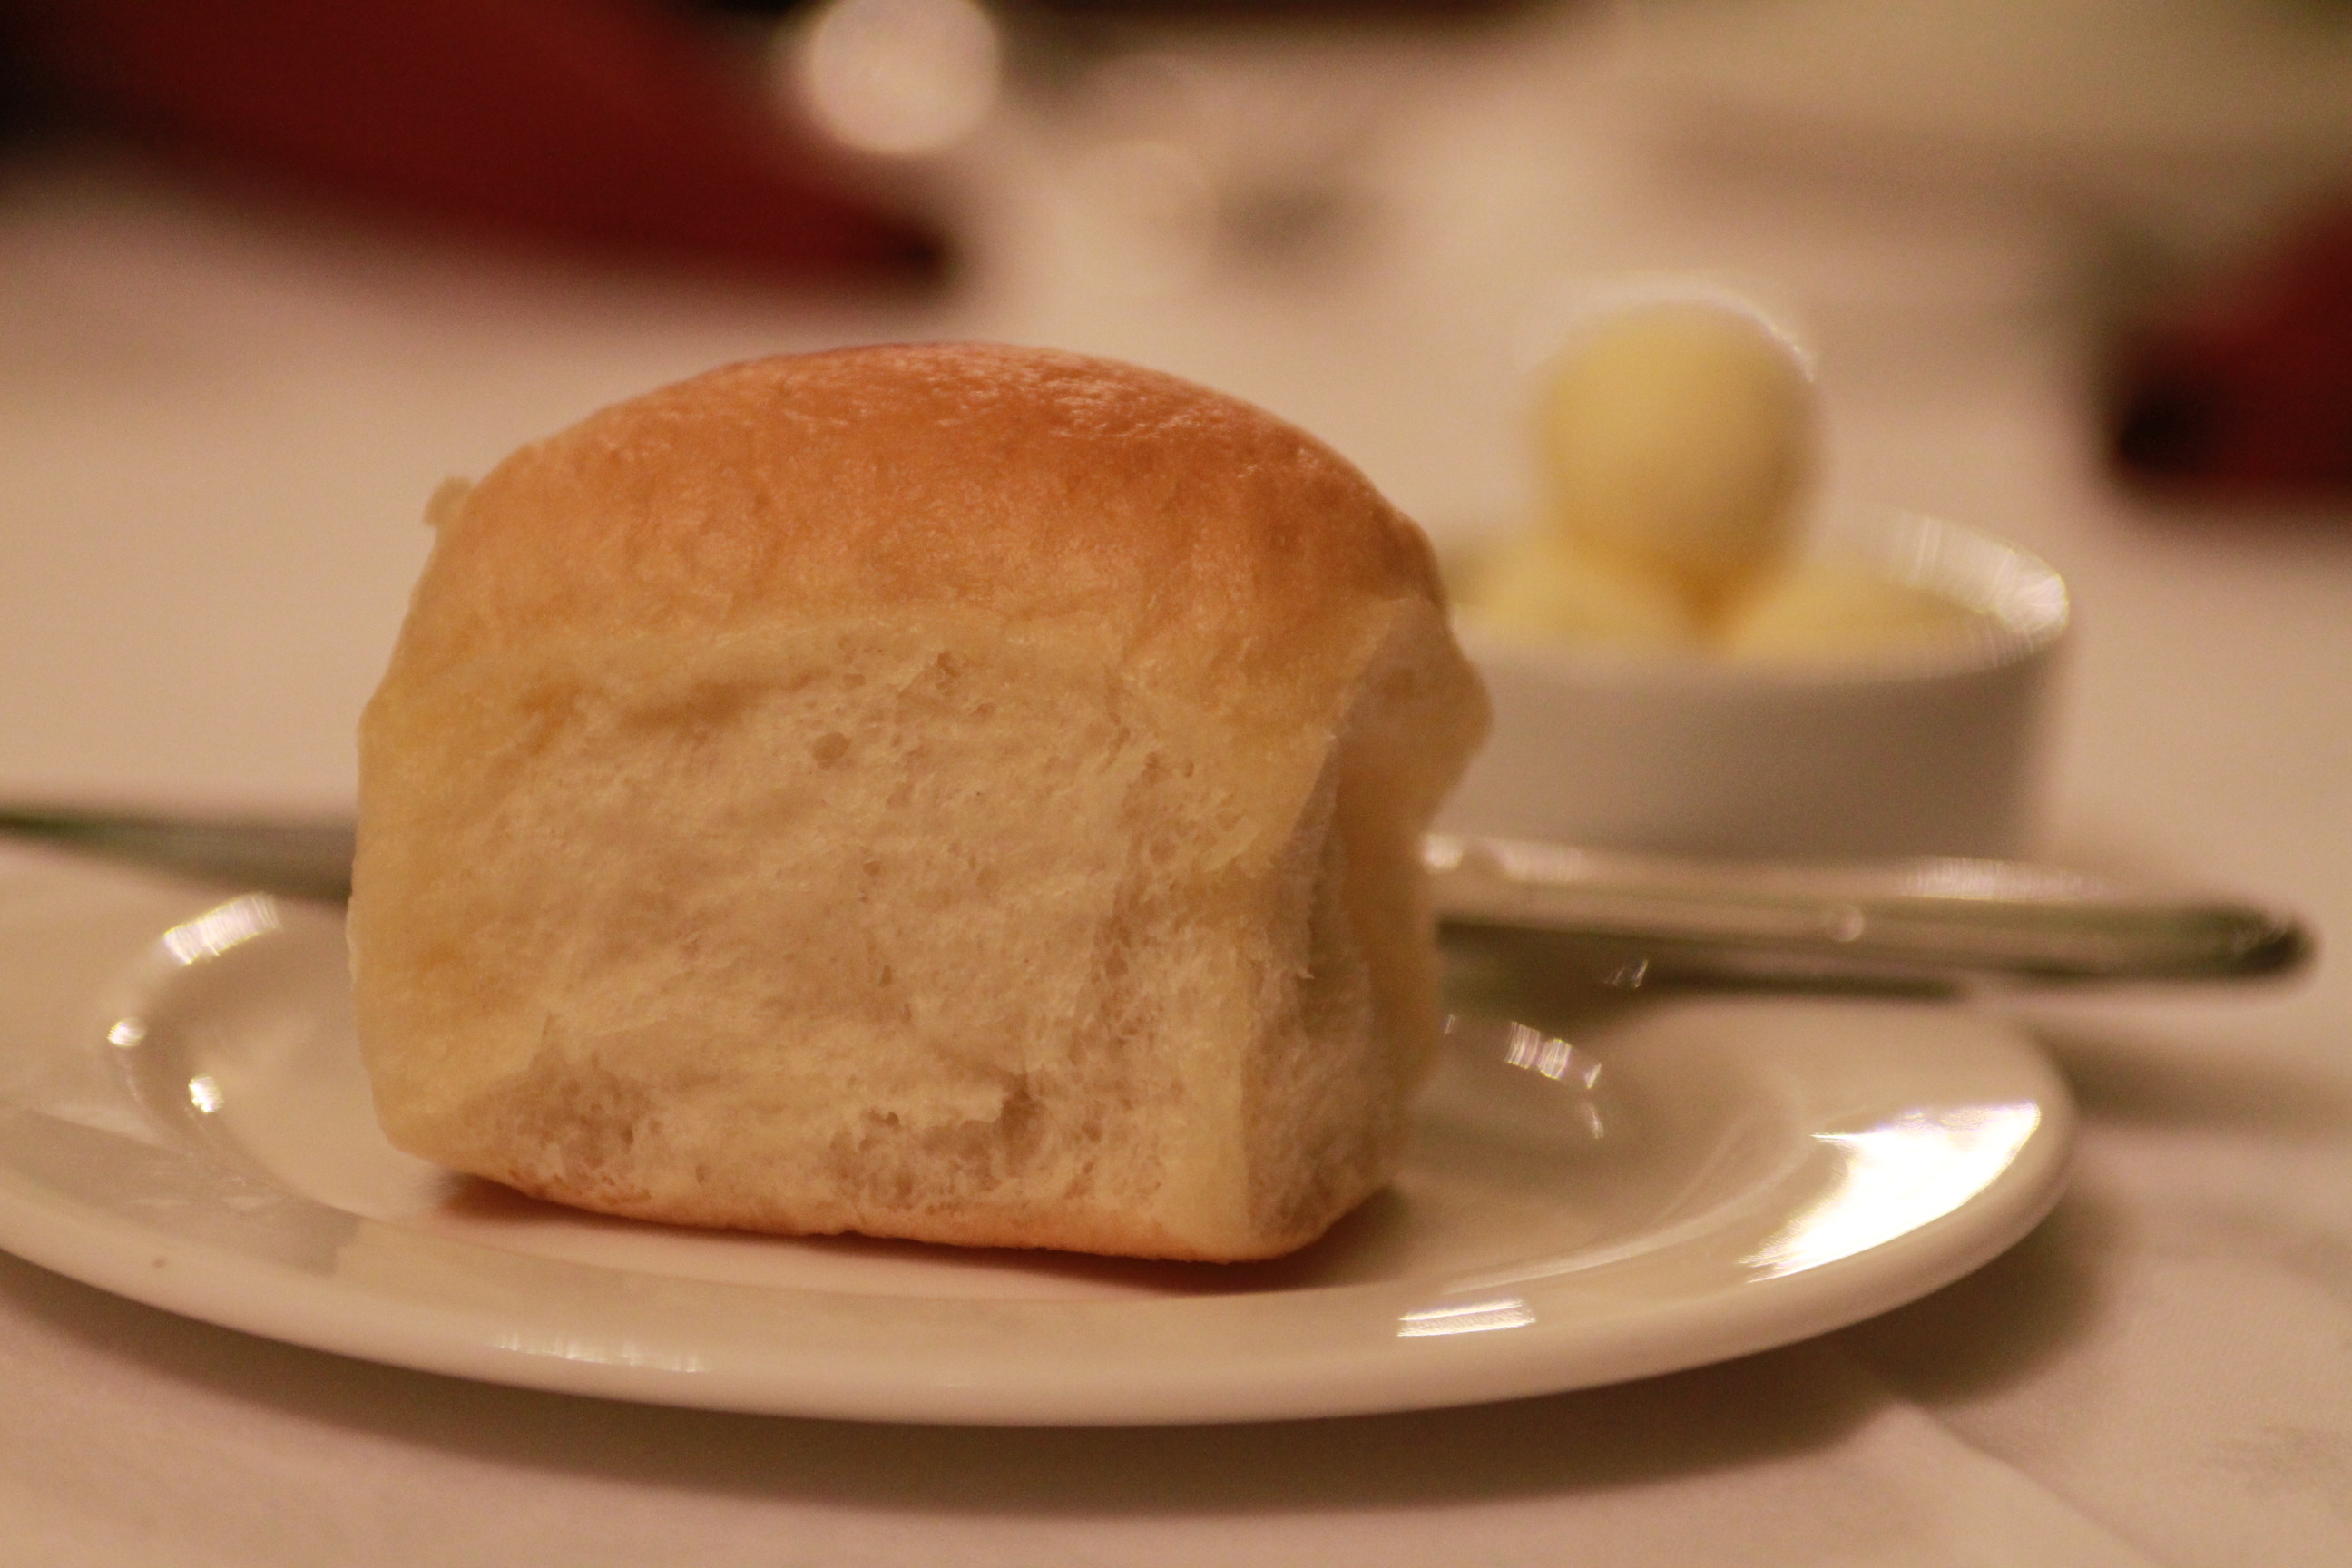 Zagat: Iconic Parker 's Restaurant, and Parker House Rolls